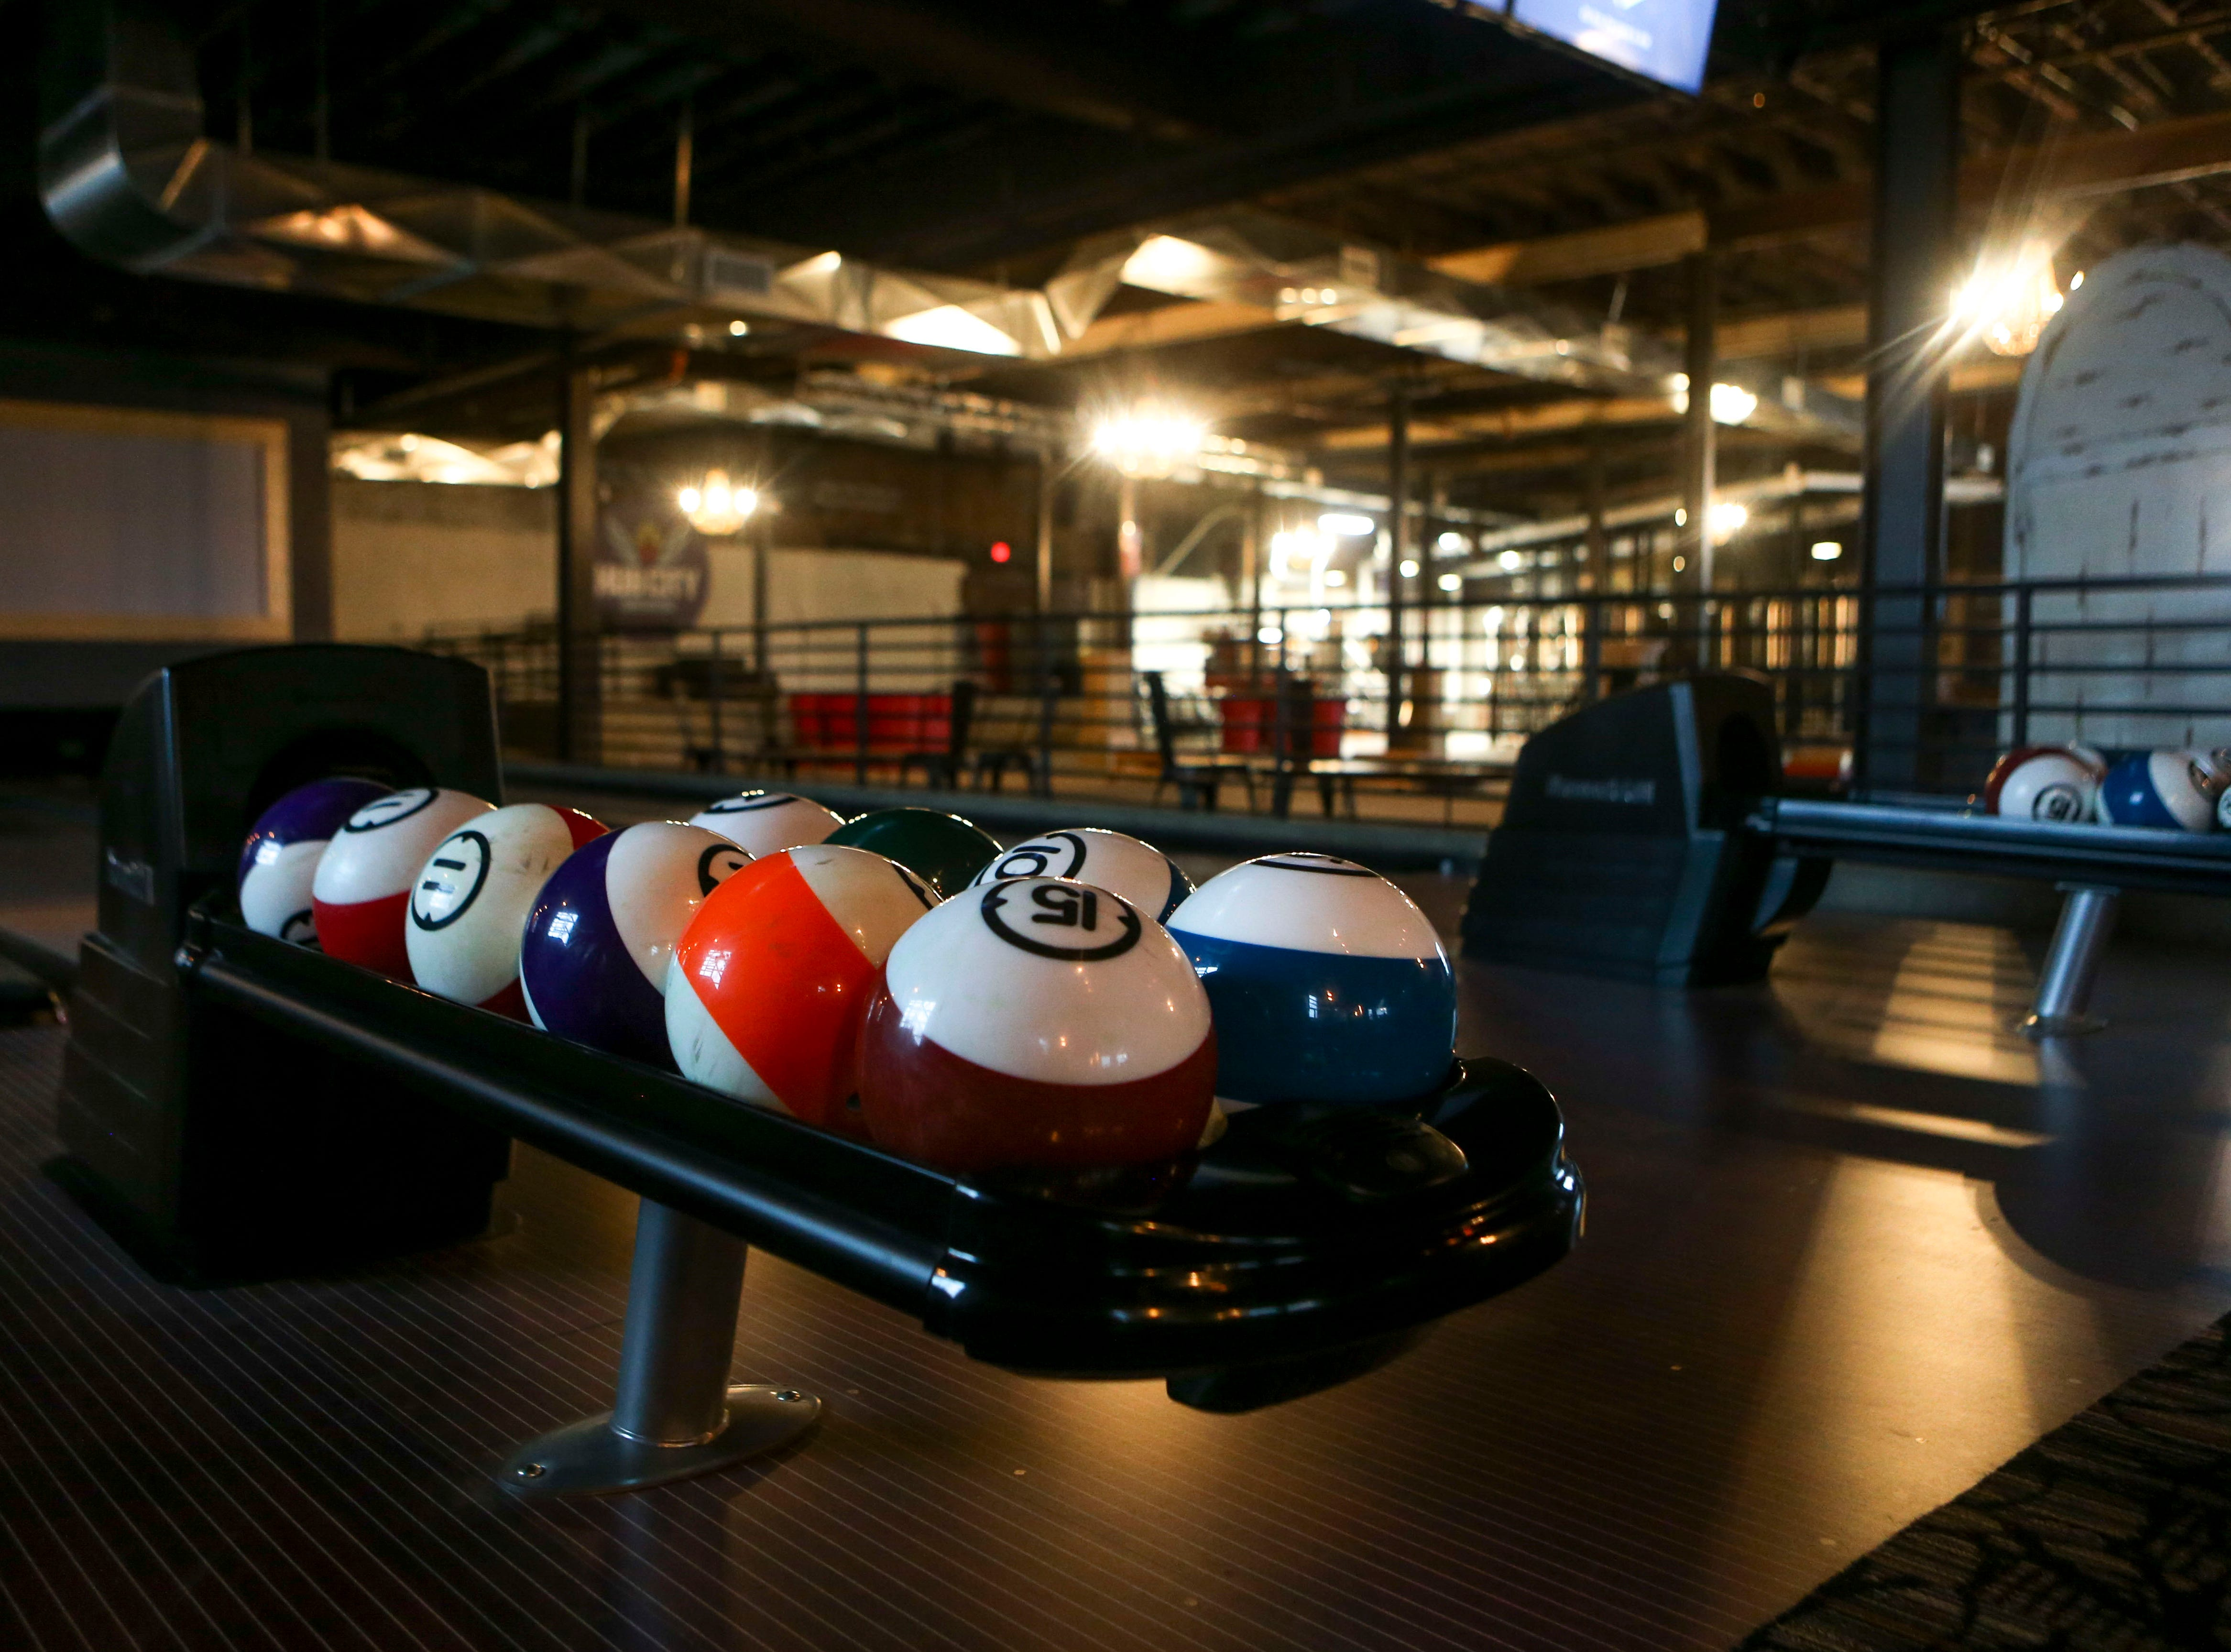 Bowling balls can be seen in their storage spots at the lanes at Hub City Brewing in Jackson, Tenn., on Wednesday, Feb. 6, 2019.